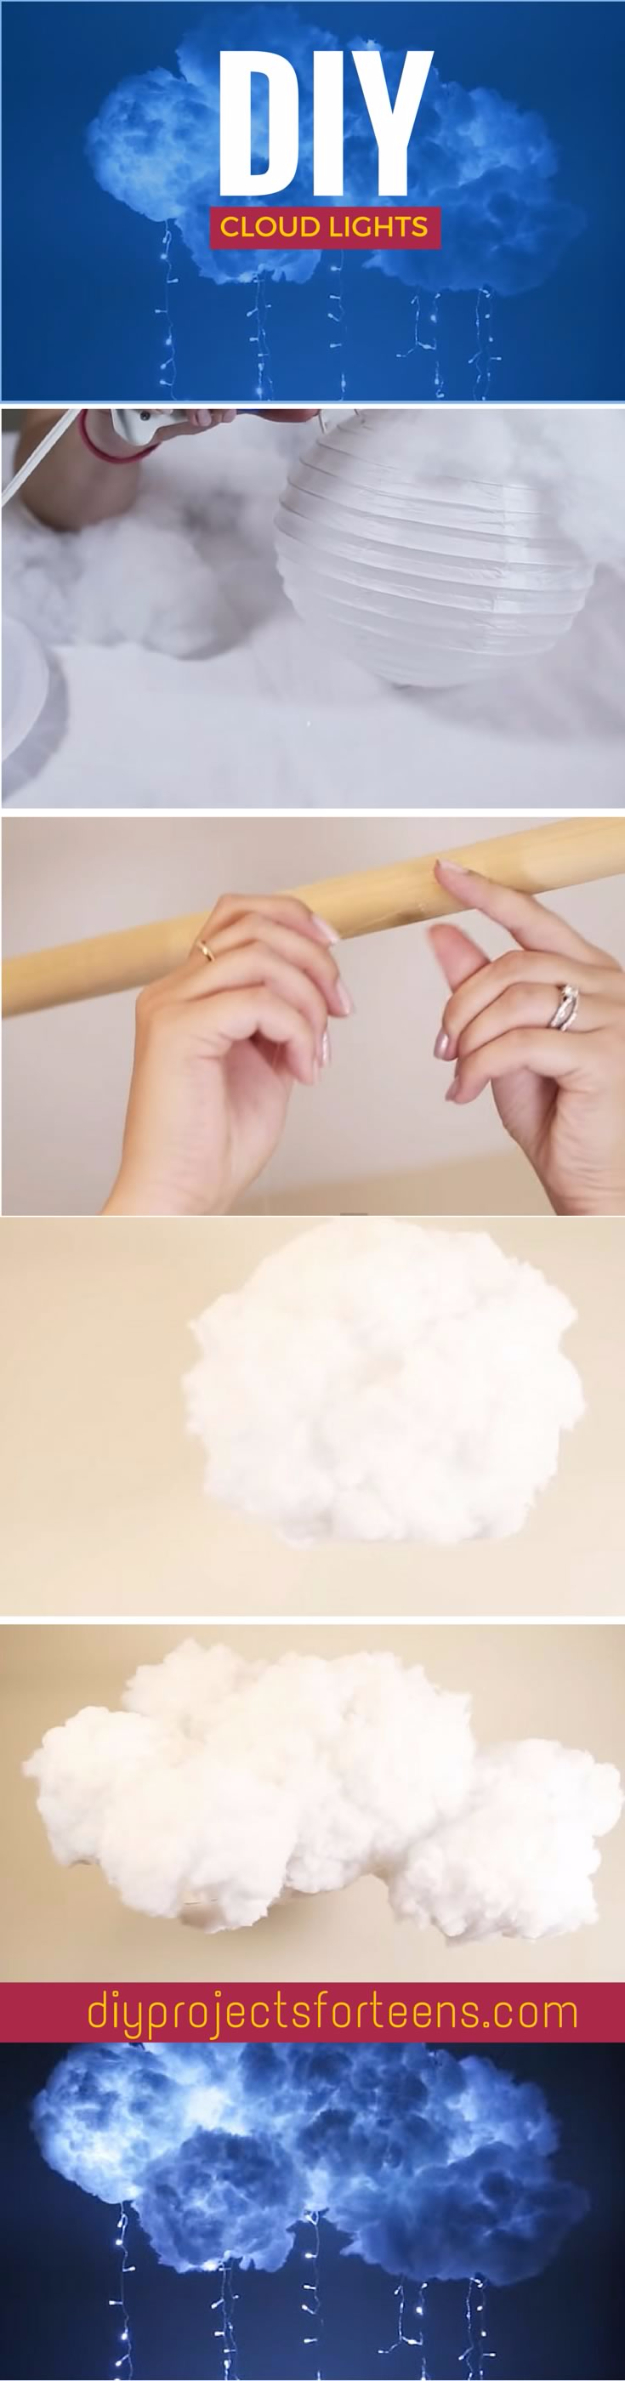 DIY Lighting Ideas for Teen and Kids Rooms - DIY Cloud Light - Fun DIY Lights like Lamps, Pendants, Chandeliers and Hanging Fixtures for the Bedroom plus cool ideas With String Lights. Perfect for Girls and Boys Rooms, Teenagers and Dorm Room Decor